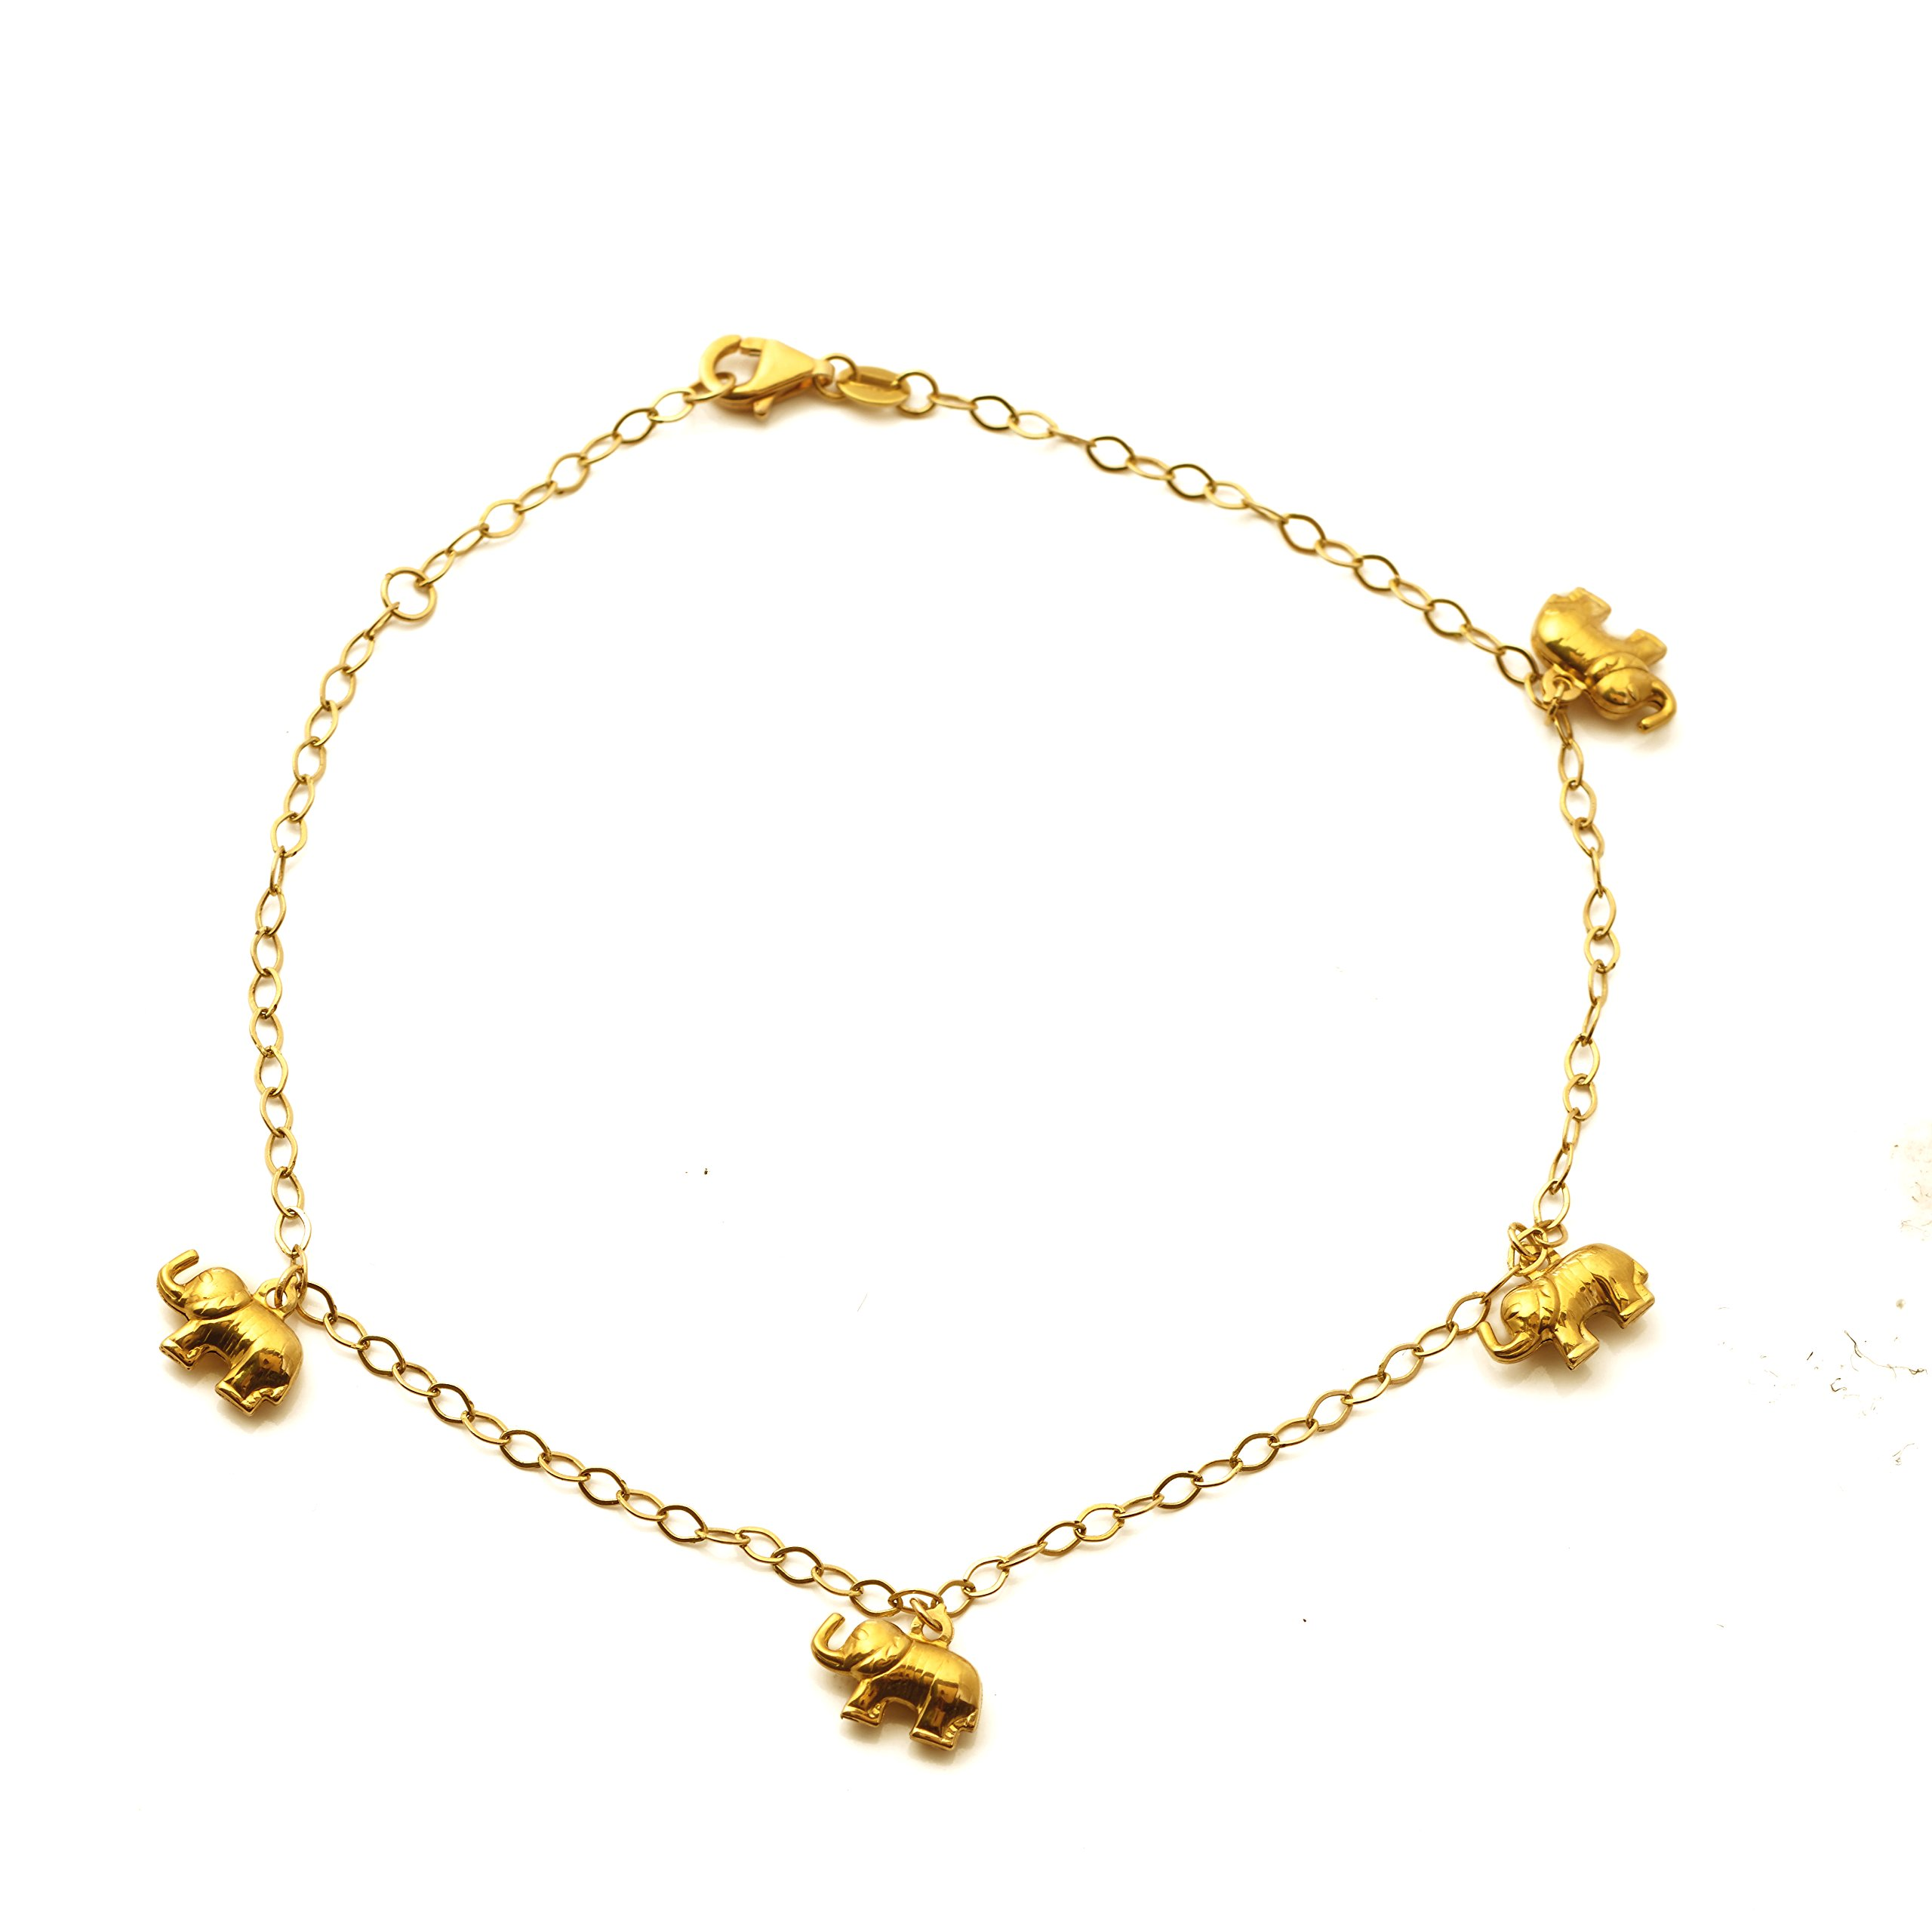 MR. BLING 10K Yellow Gold 2mm D/C Rolo Chain with 4 Elephant Charm Anklet Adj. 9'' to 10'' (#38)